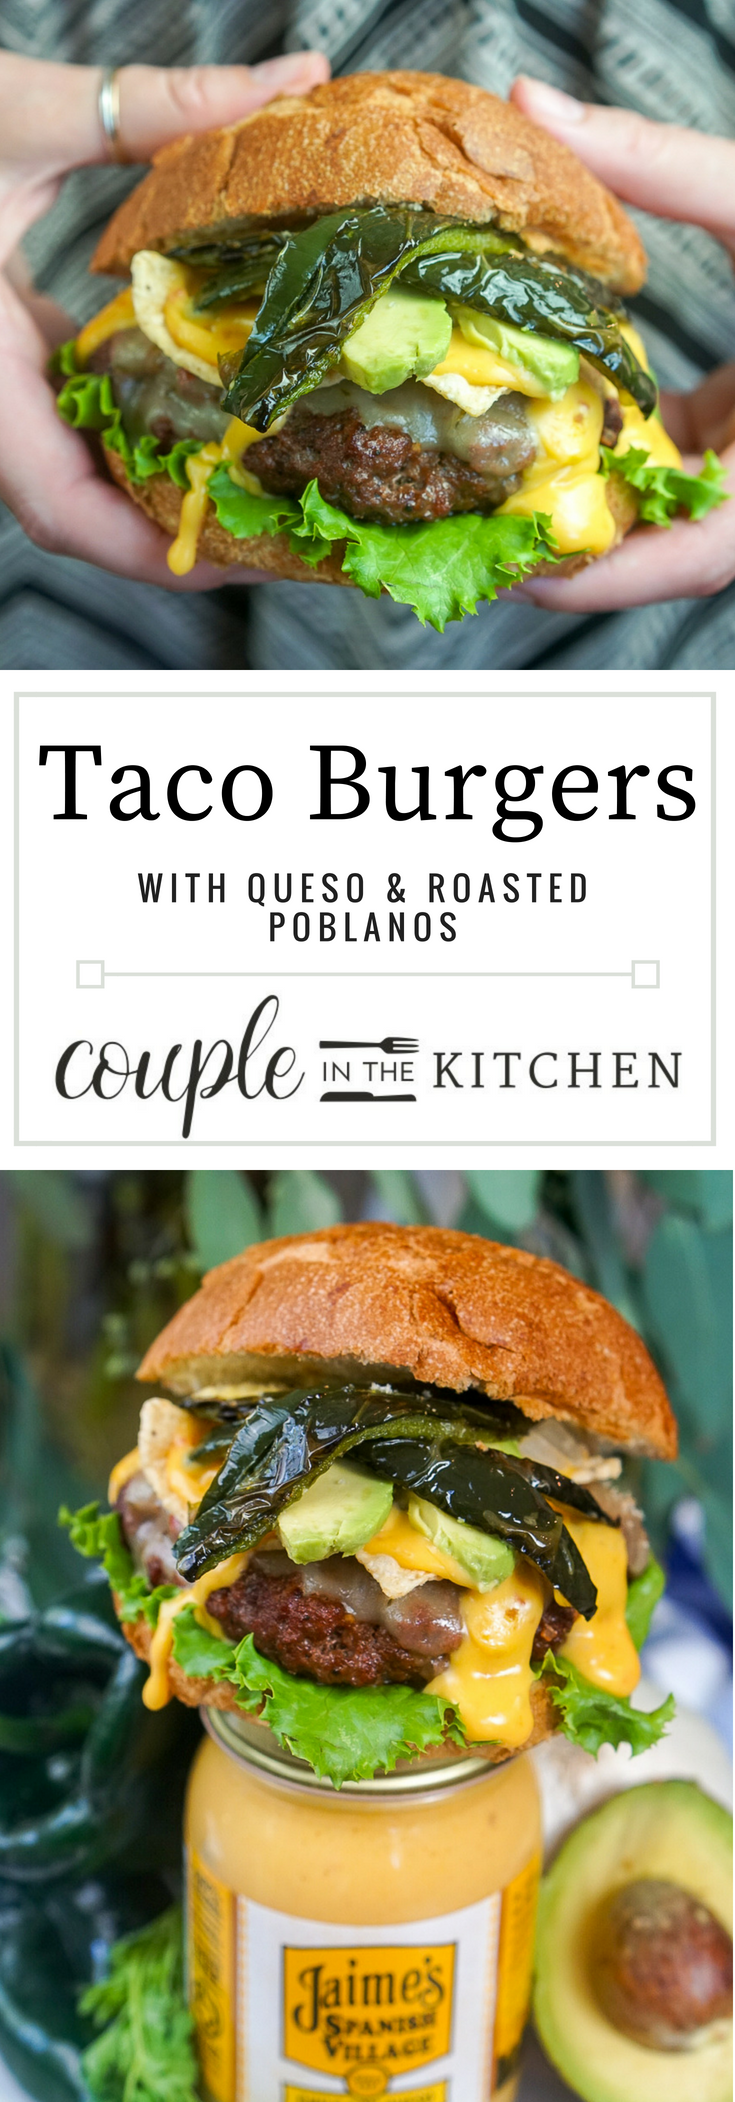 Taco Burgers with Roasted Poblanos and Queso Cheese | coupleinthekitchen.com